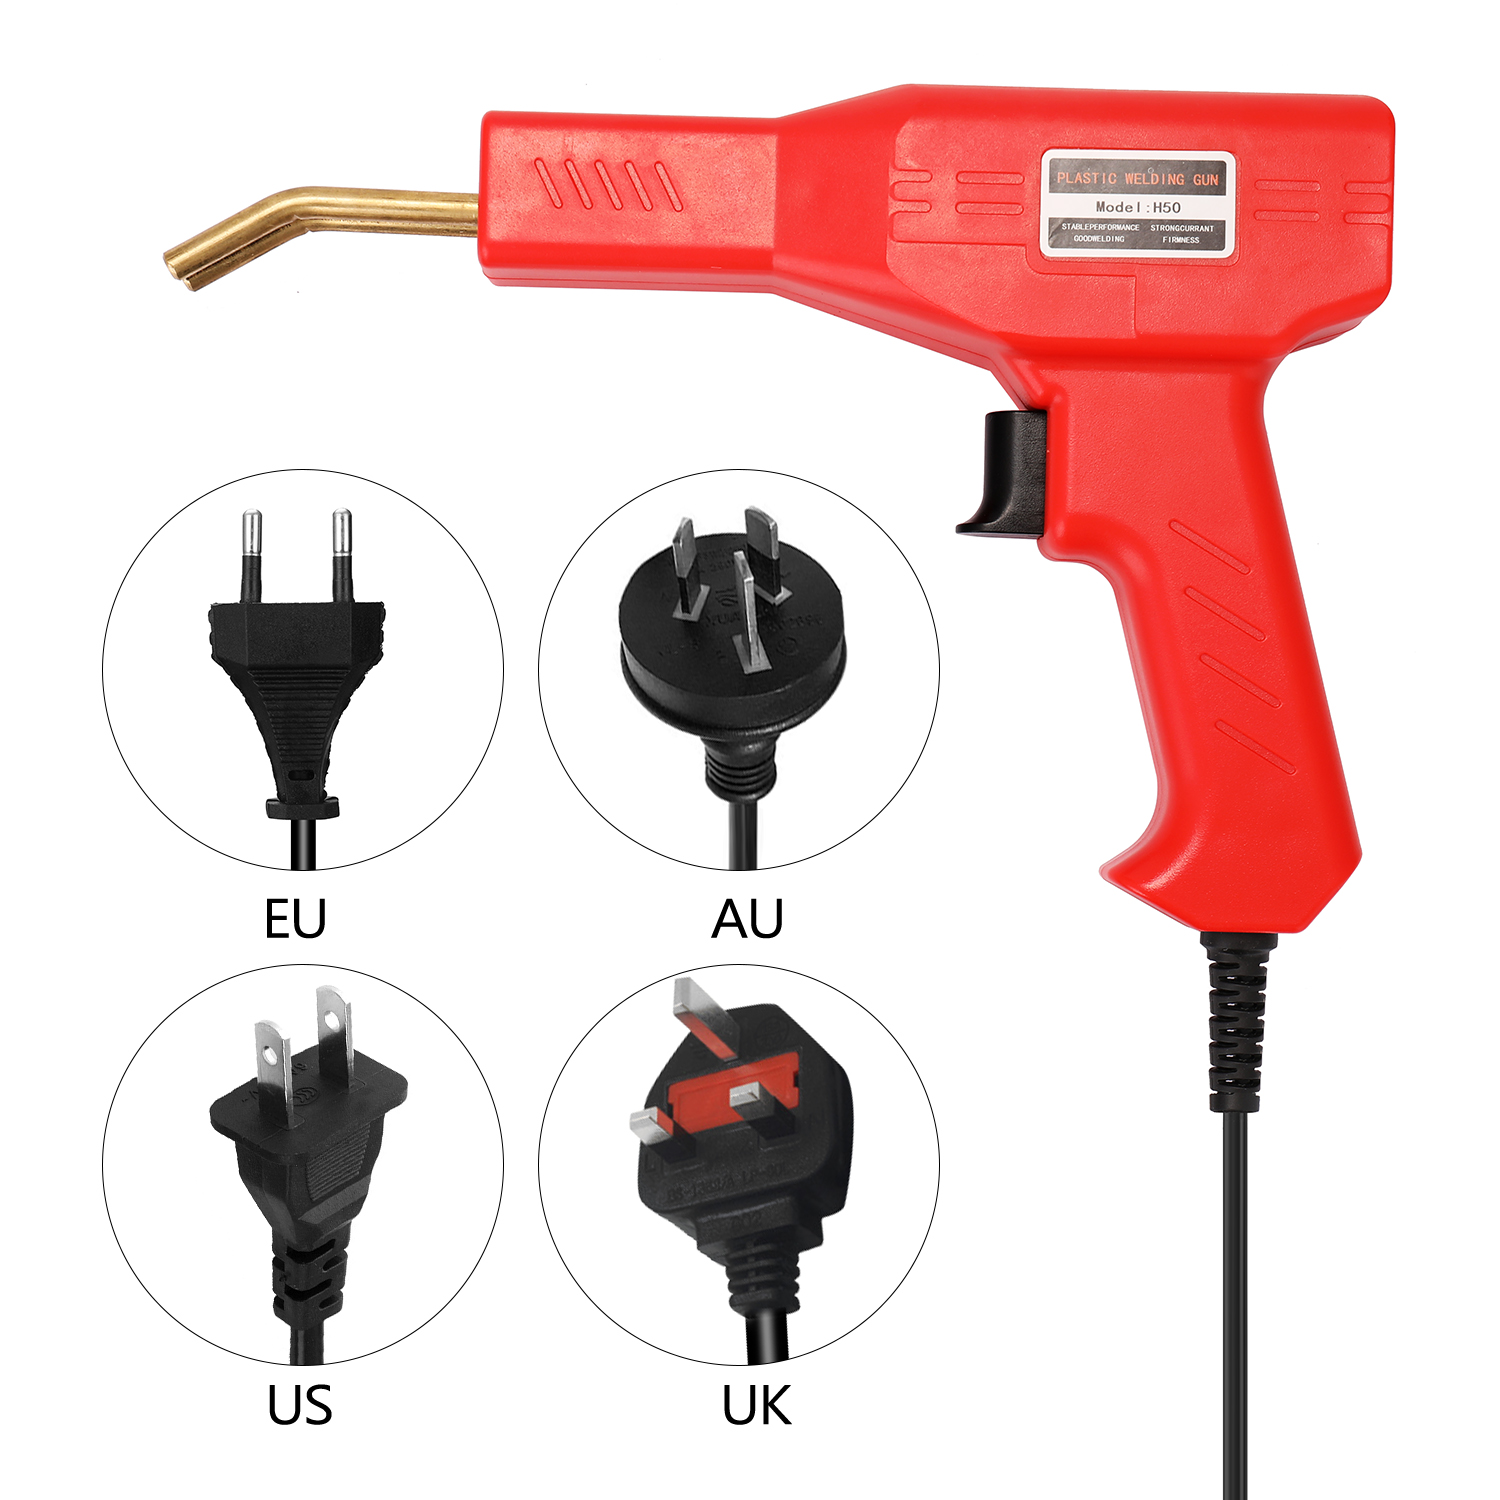 home improvement : 18V 520 N m Cordless Electric Screwdriver Speed Brushless Impact Wrench Rechargable Drill Driver  LED Light For Makita Battery